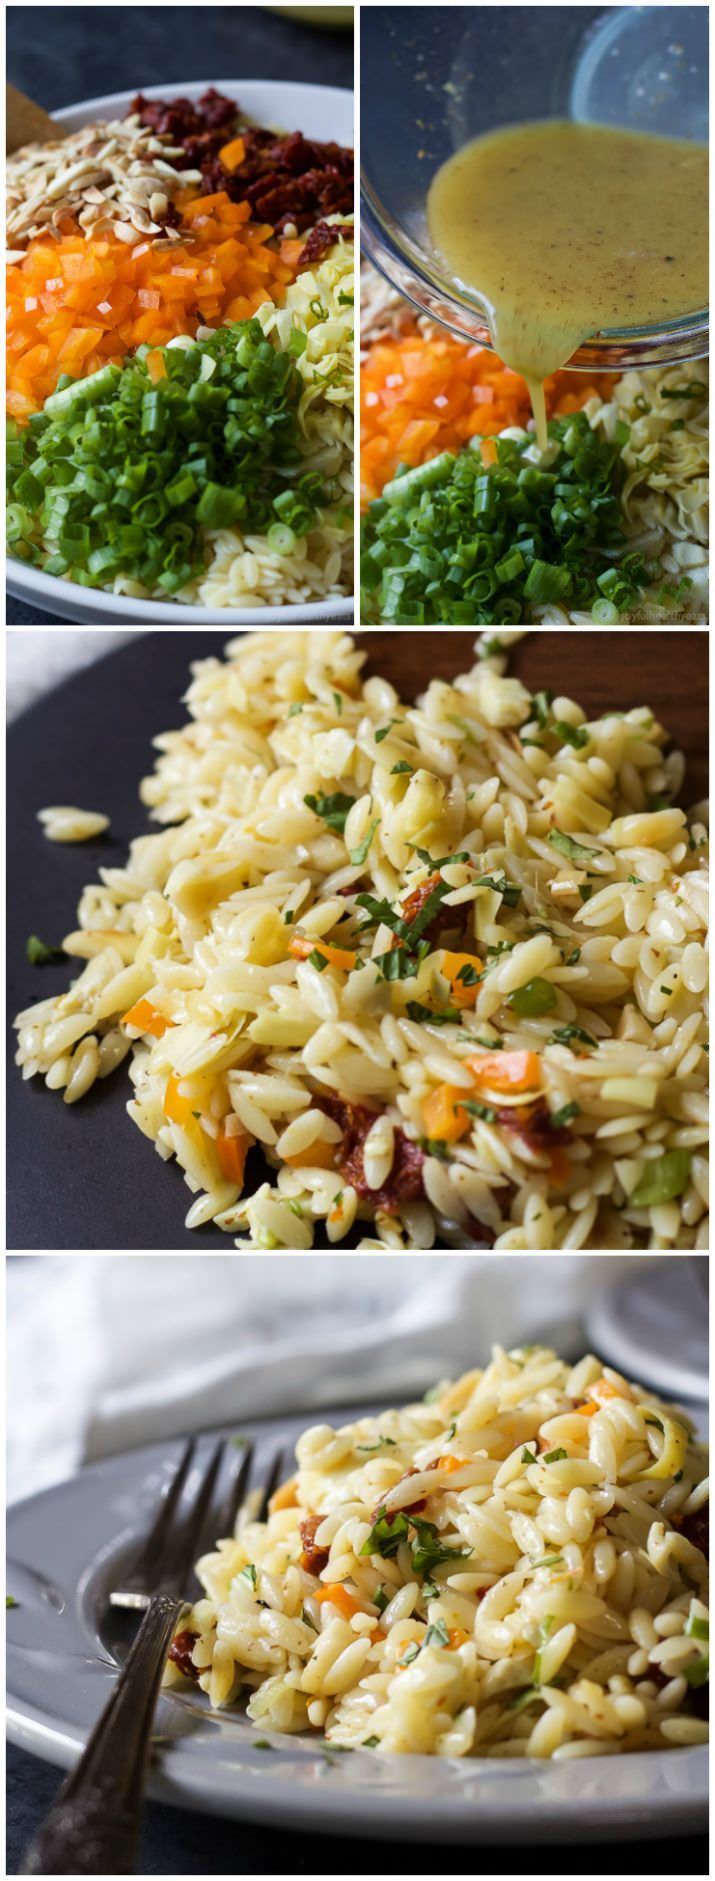 ... meals on Pinterest | Clean eating, Chris powell diet and Greek salad